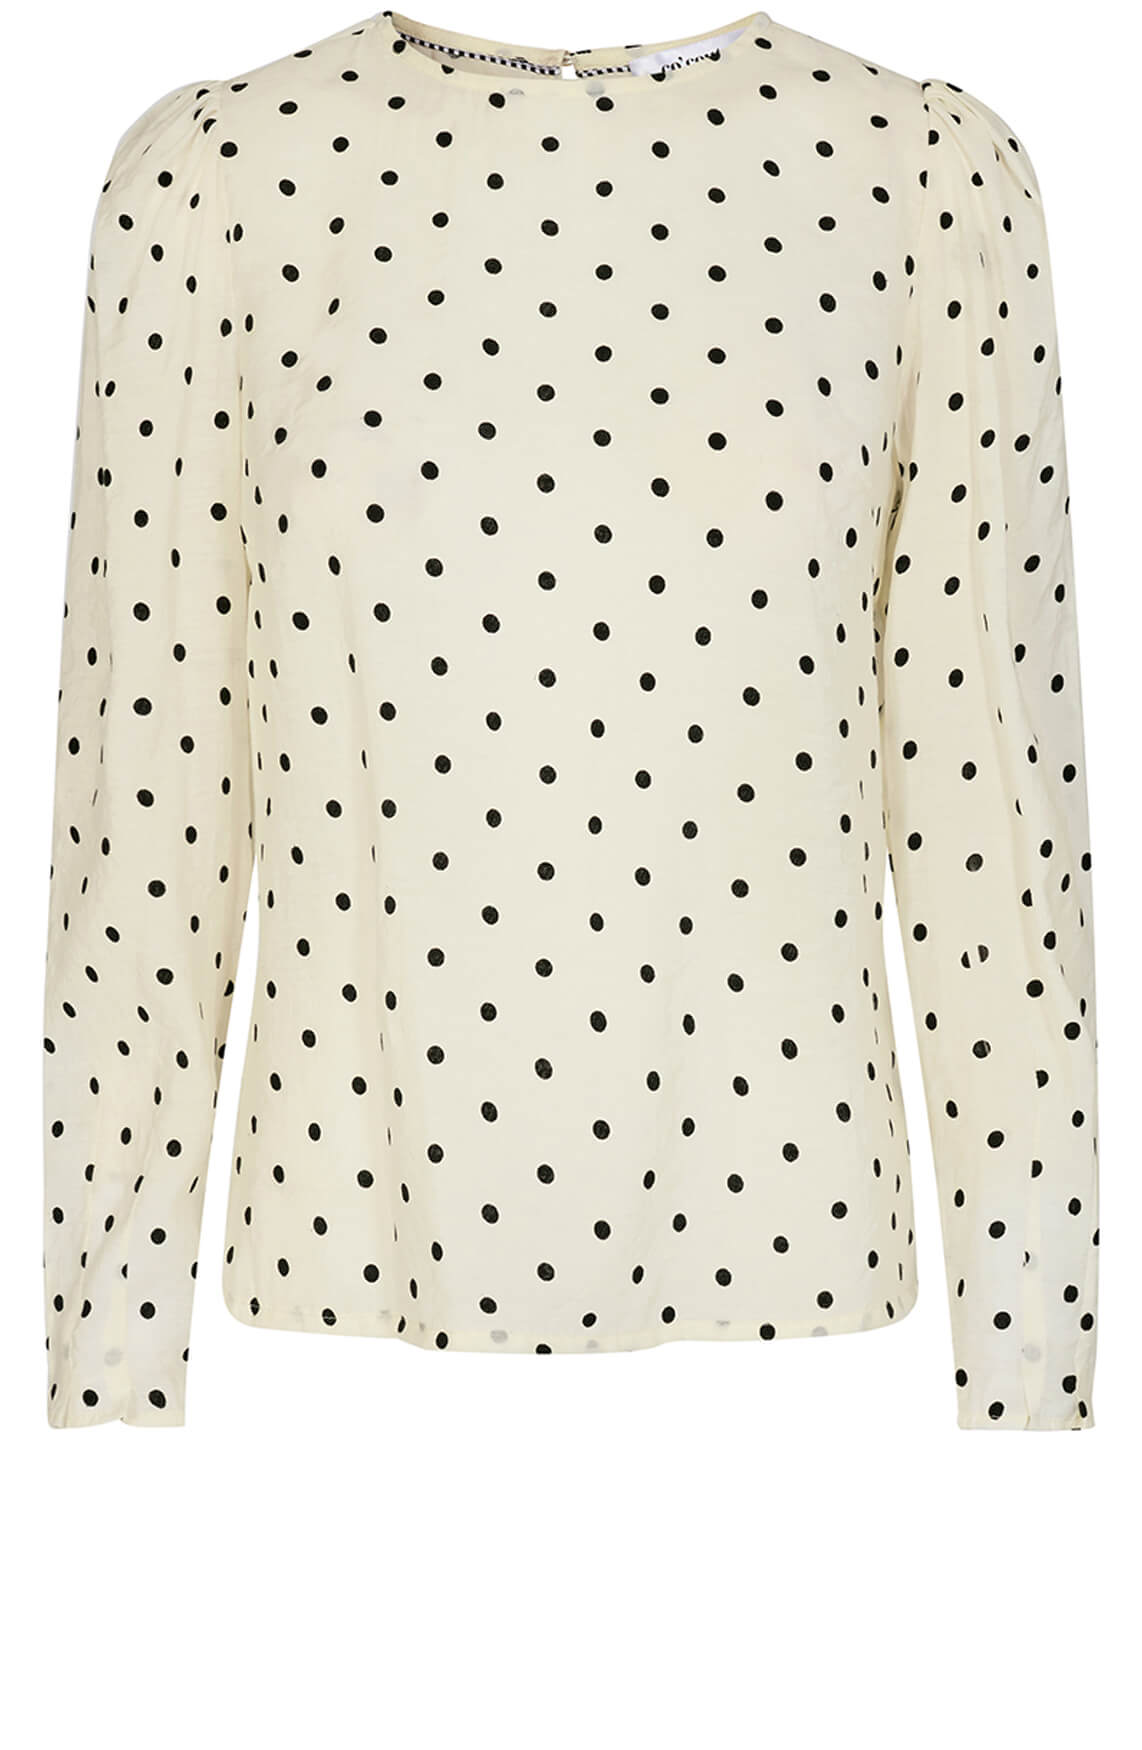 Co Couture Dames Terra blouse wit